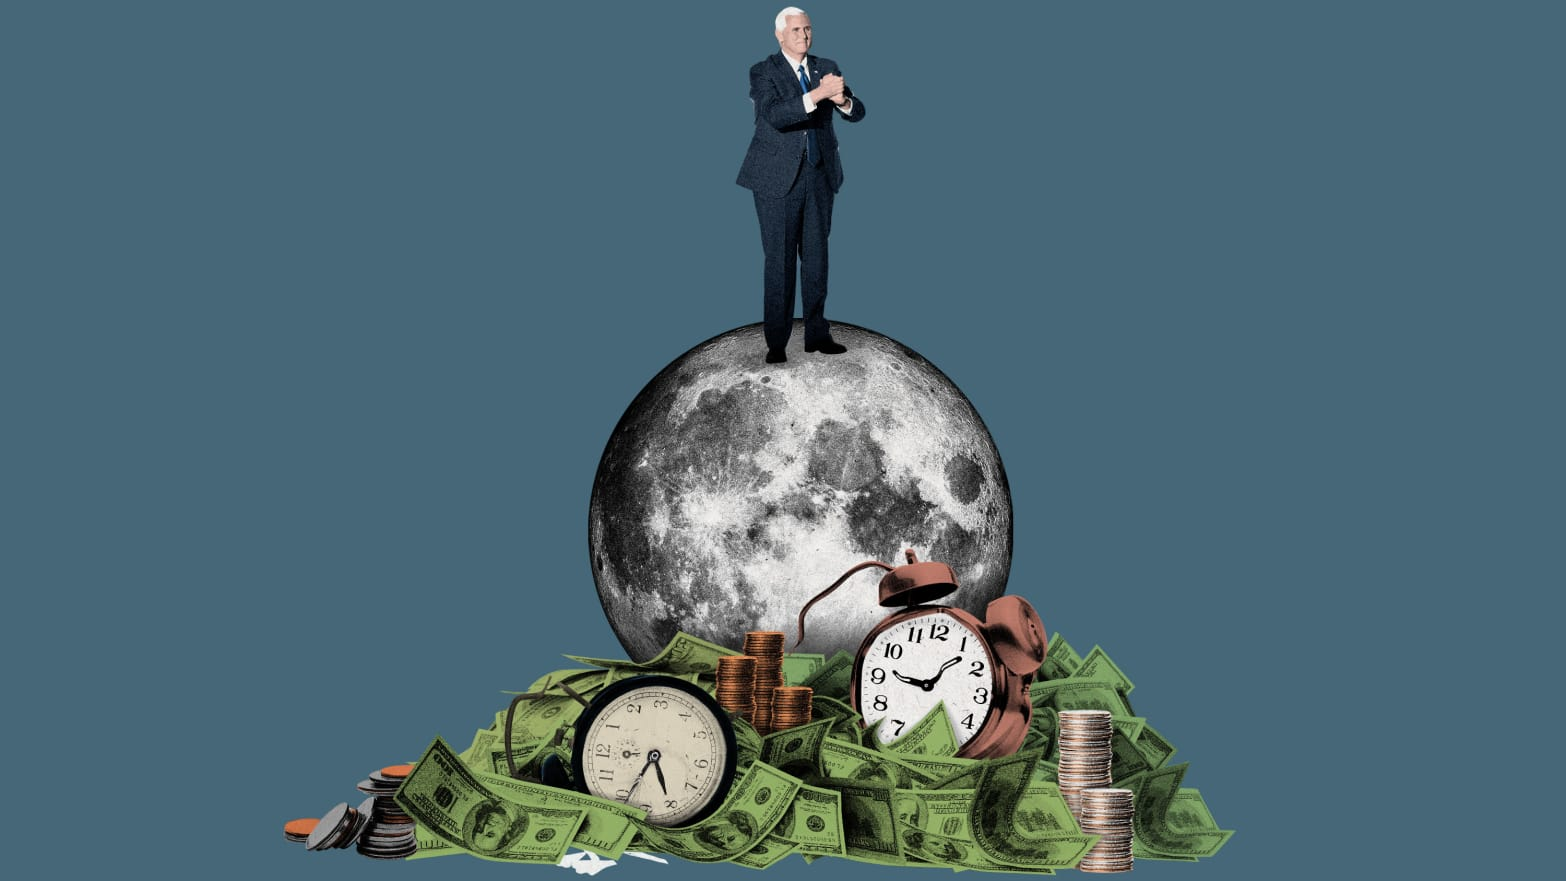 illustration of mike pence standing on a moon with clock and cash at its base china change chang e lunar mission nasa space force